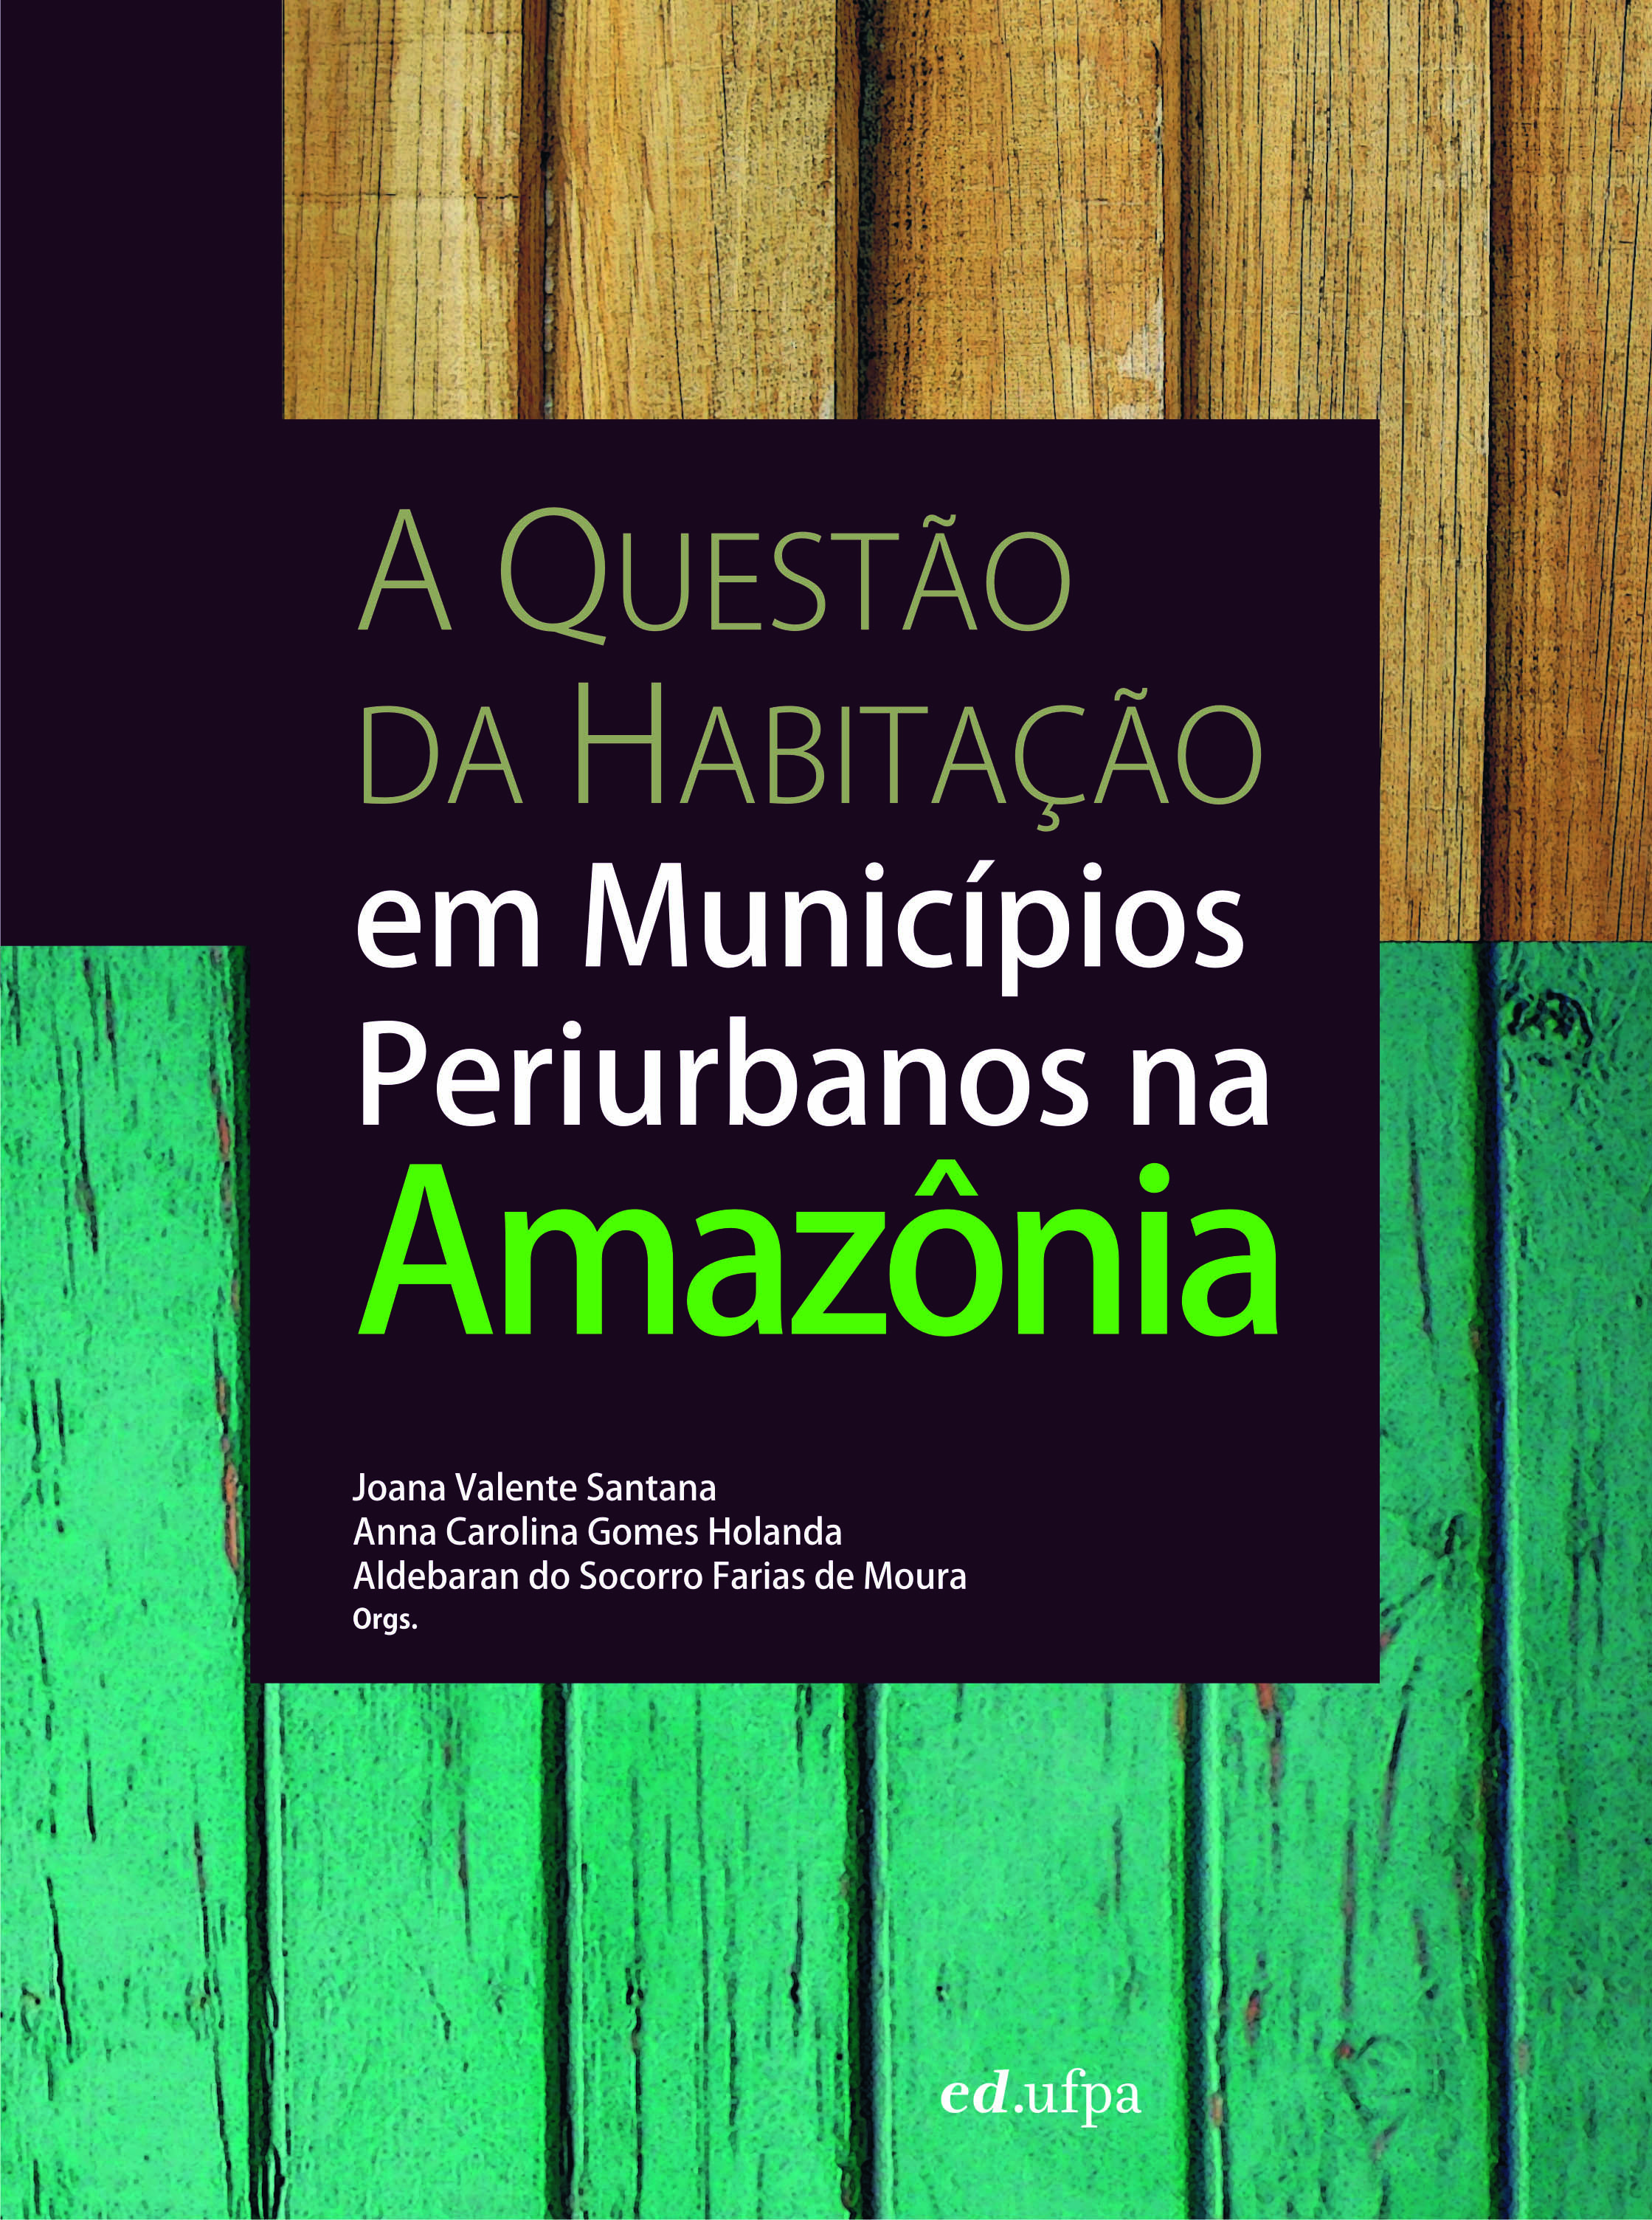 THE ISSUE OF HOUSING IN THE OUTSKIRTS OF AMAZONIAN CITIES